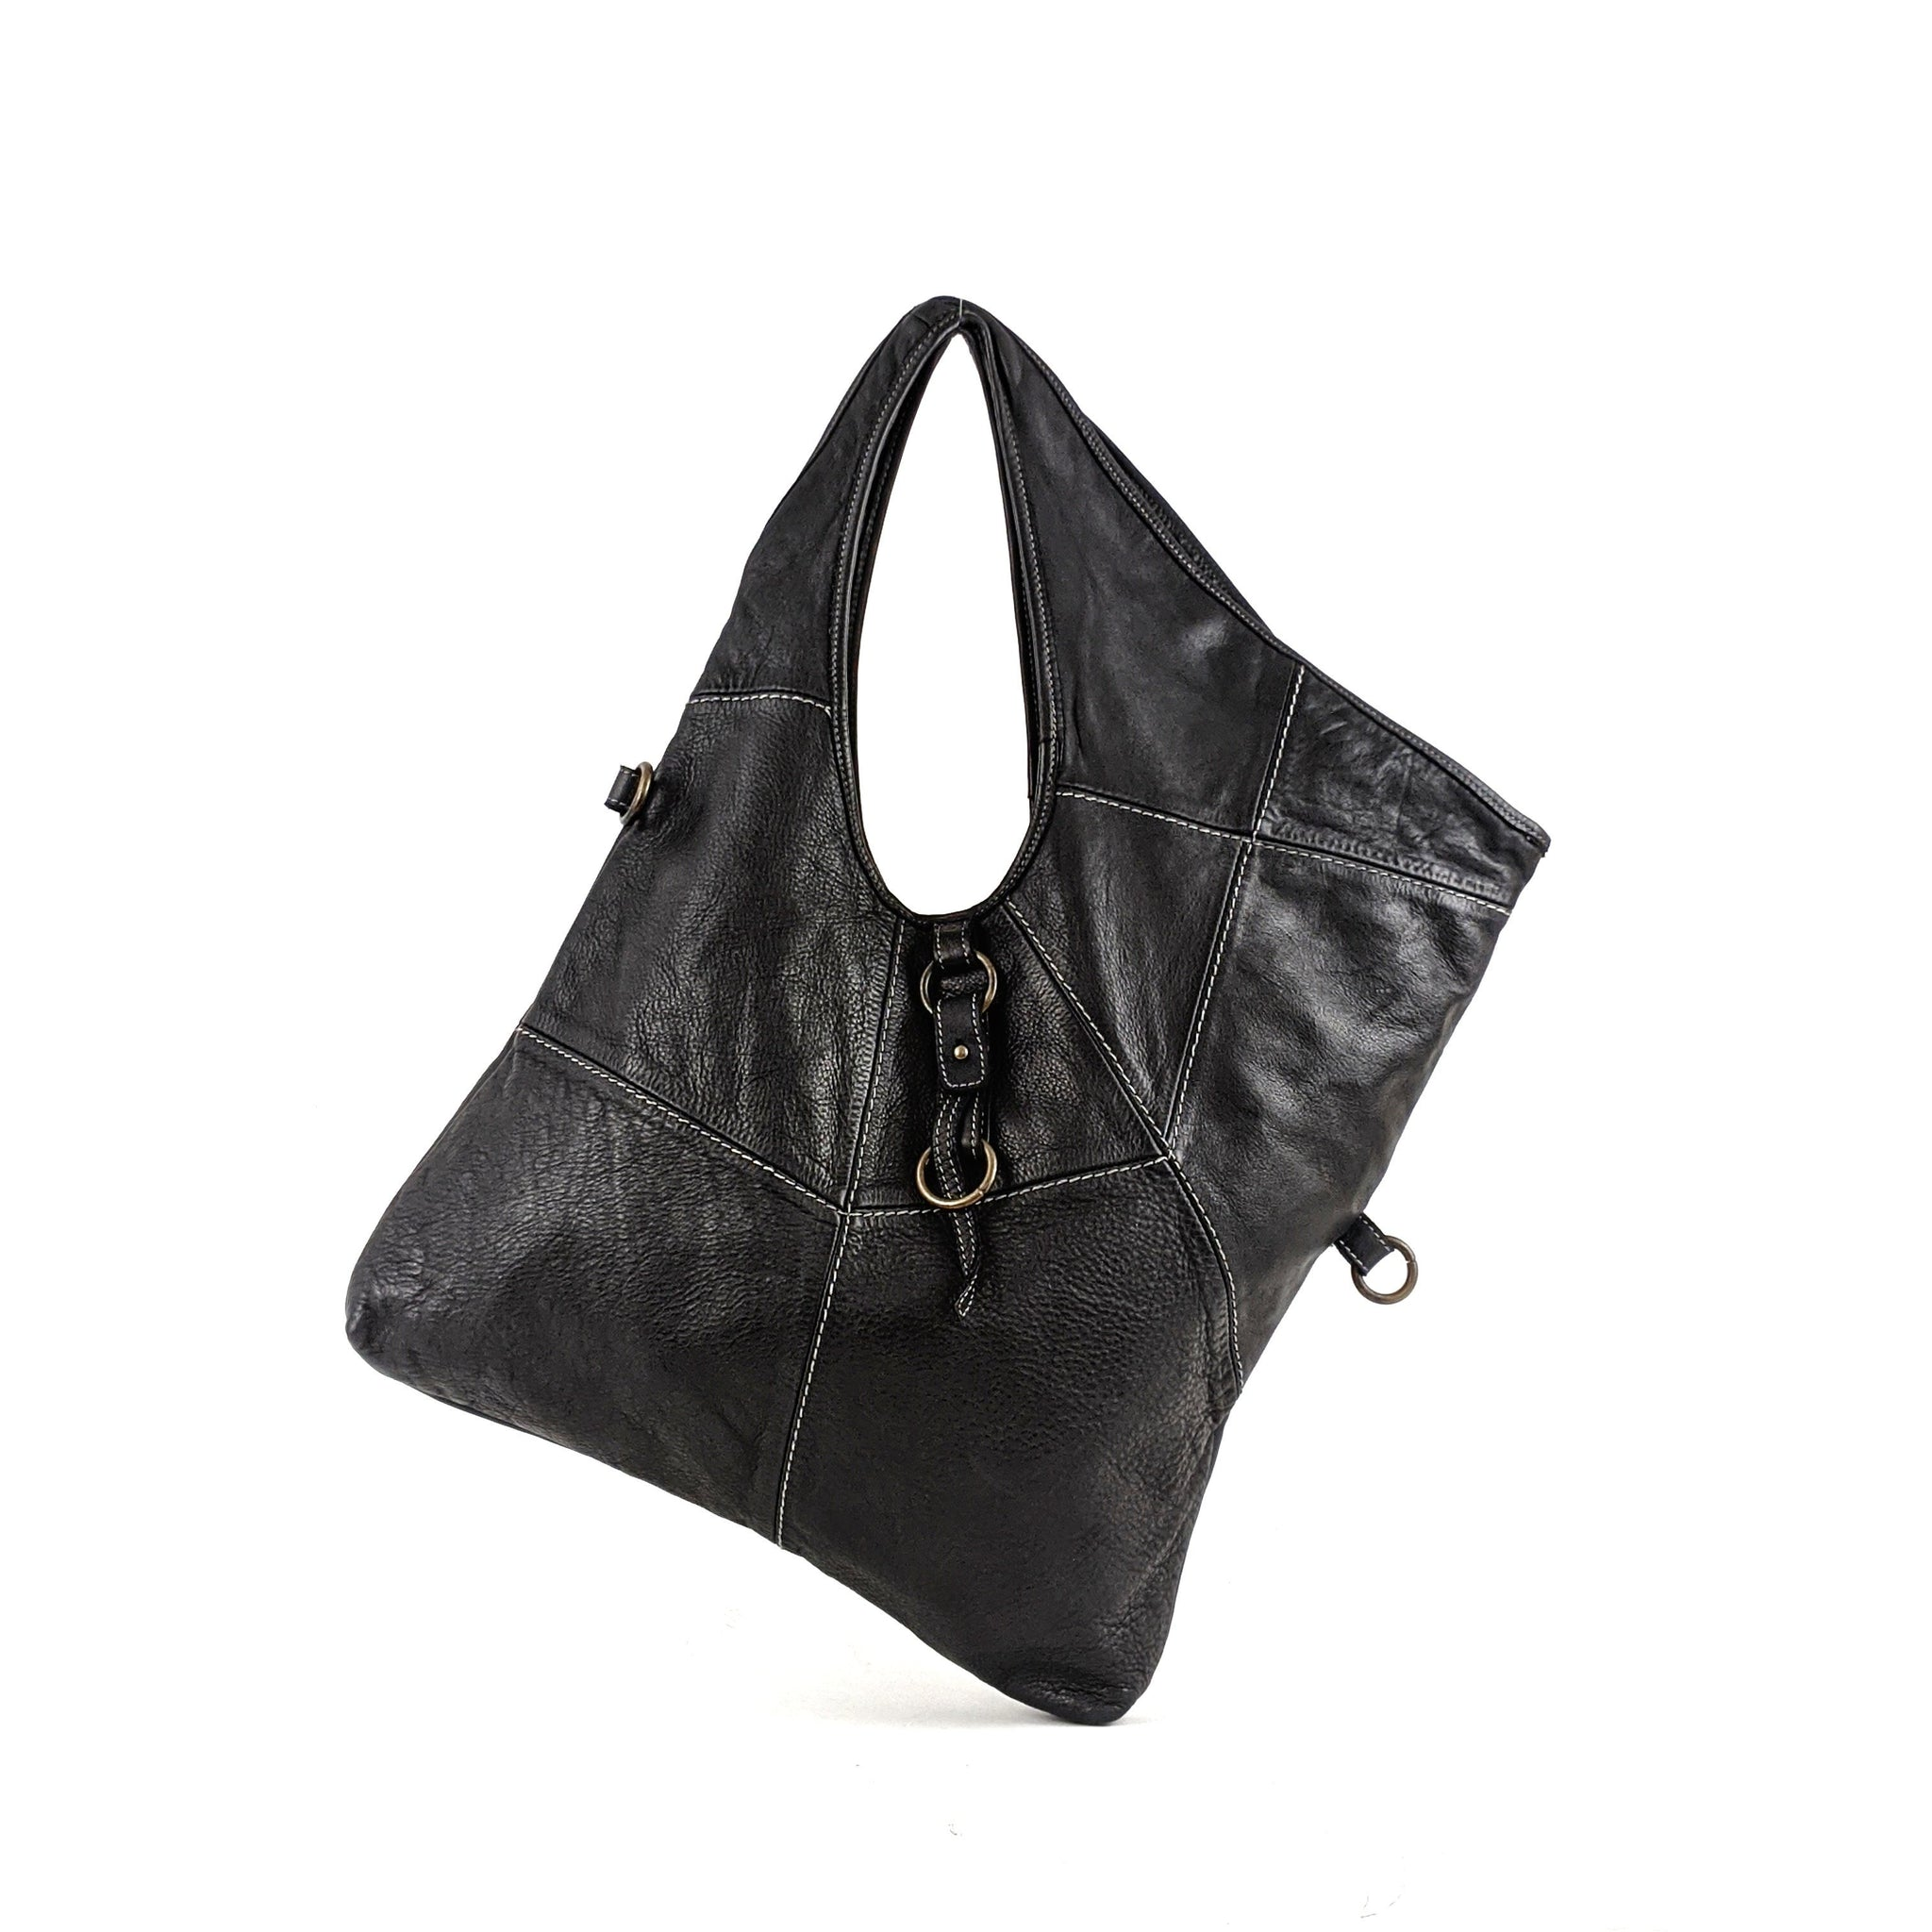 Stardust Convertible Bag